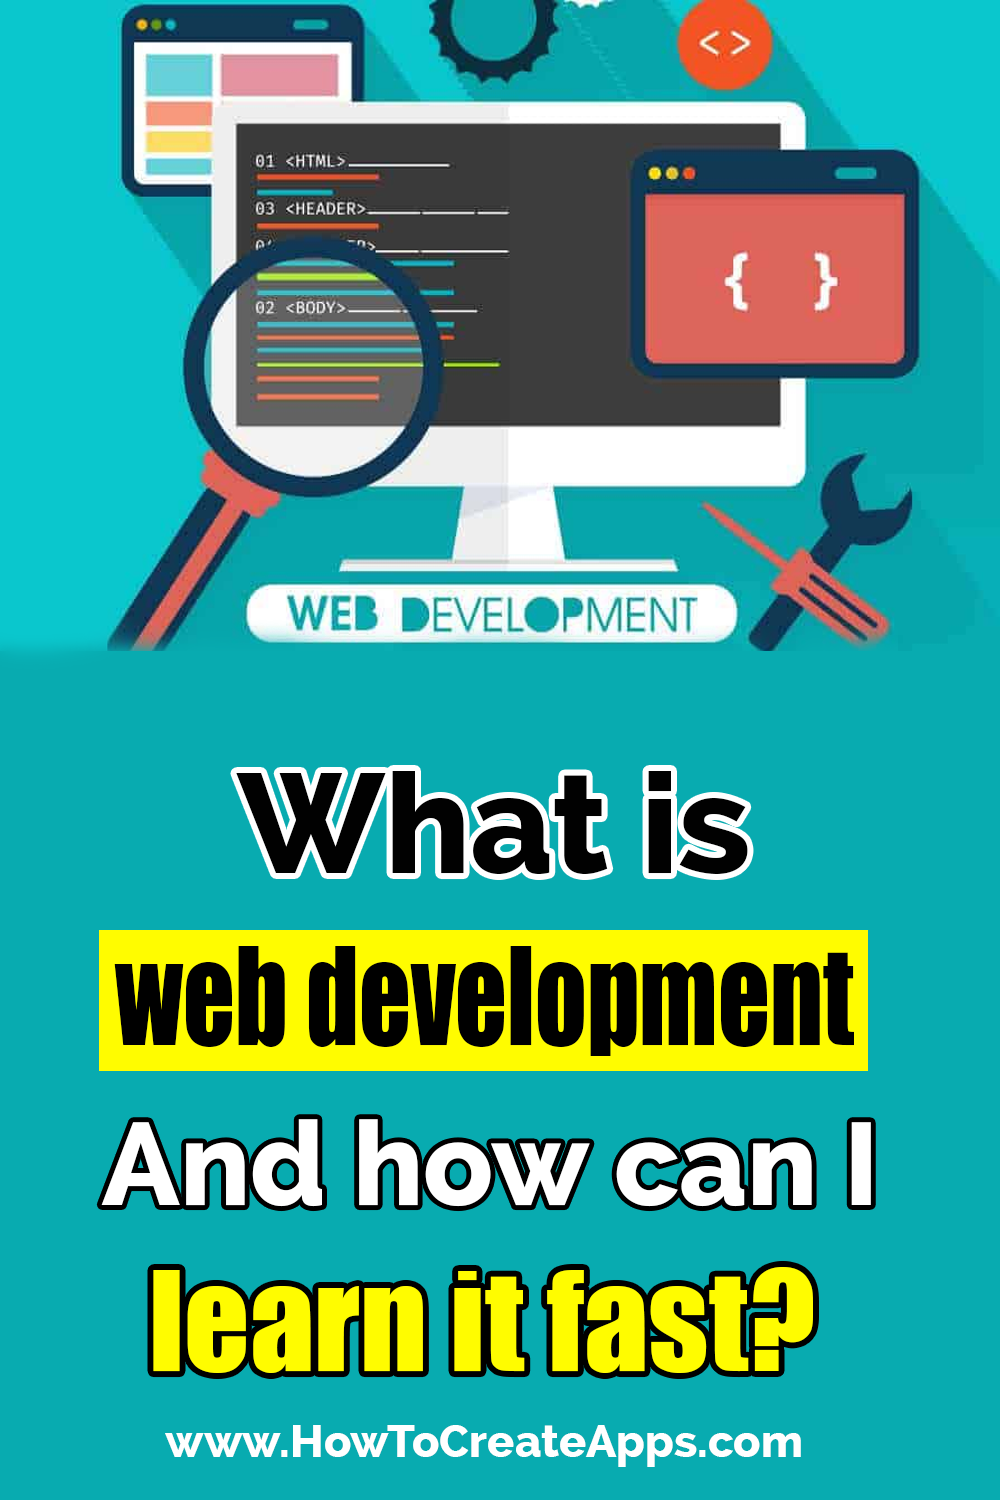 What is web development and how can I learn it fast? Web